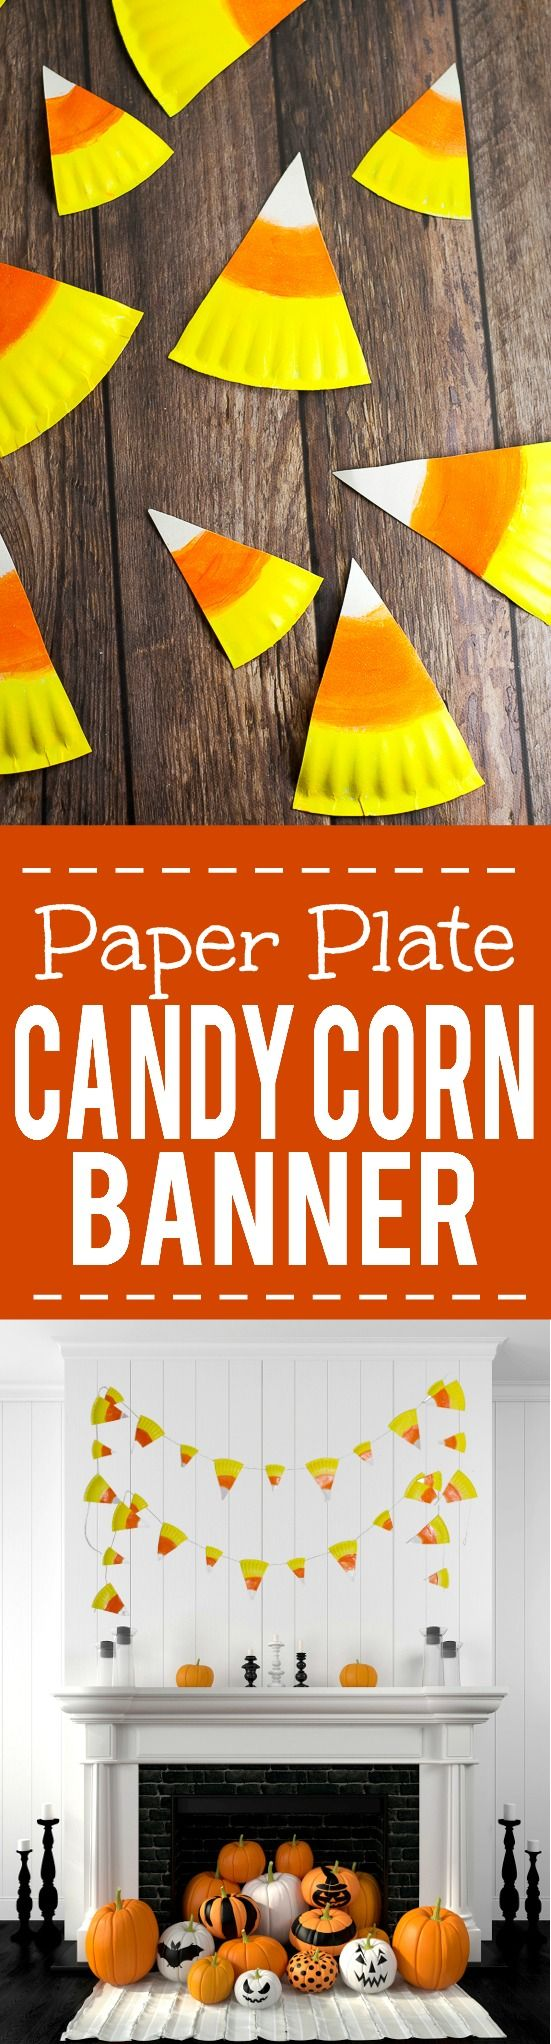 easy paper plate candy corn banner tutorial diy halloween decorationsautumn - Candy Corn Halloween Decorations